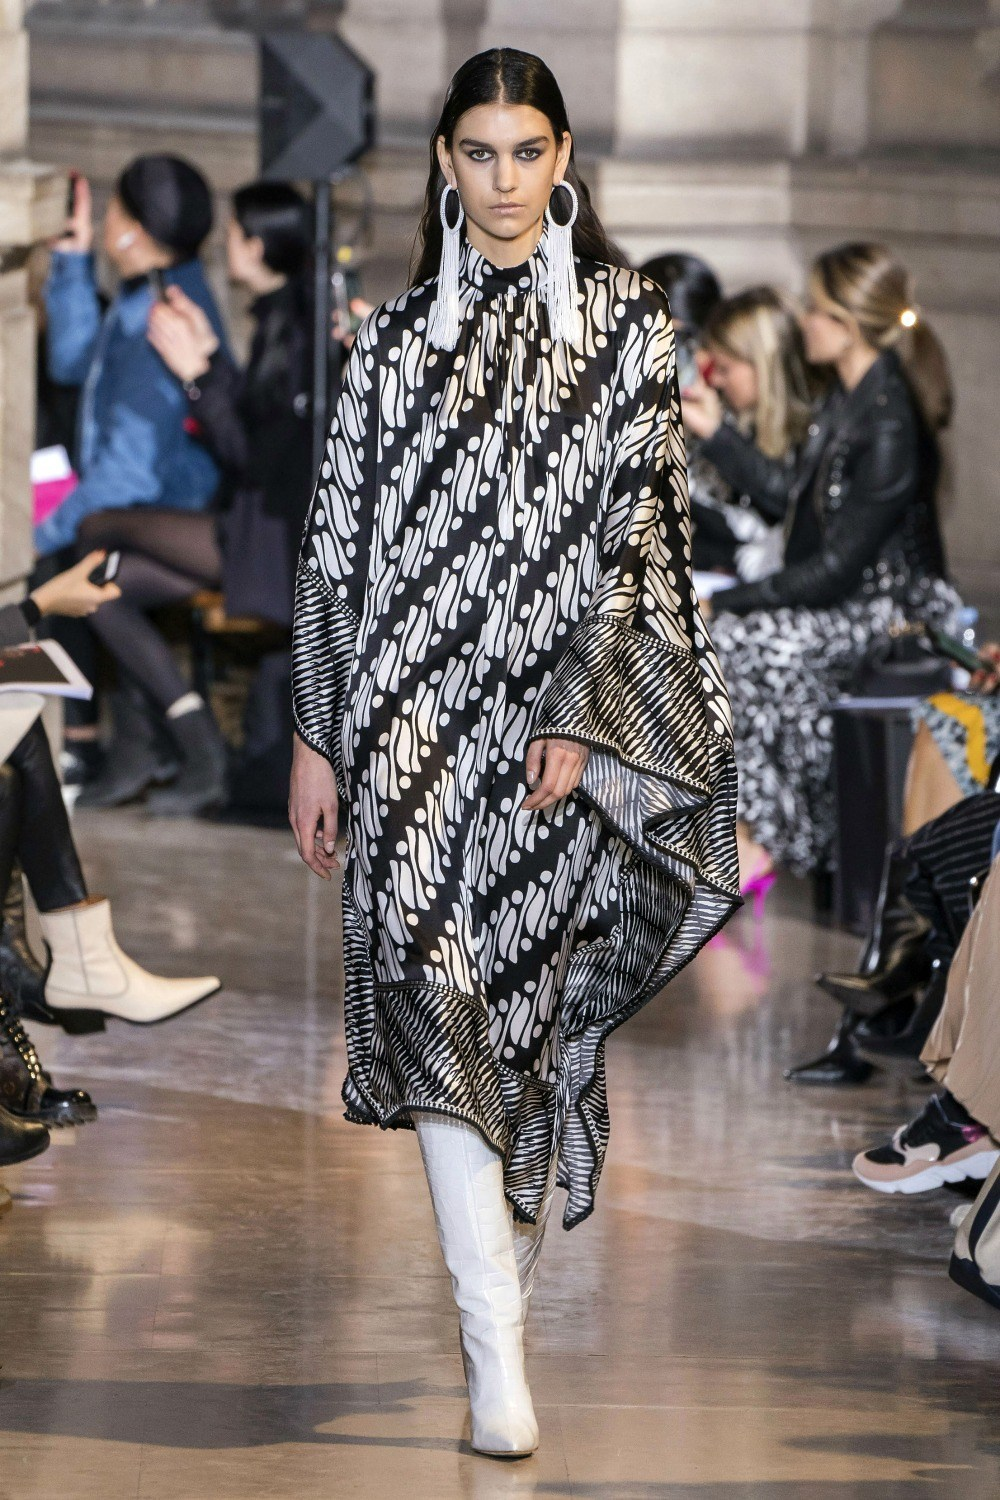 2019 Fall Fashion Trends to Wear Now I The Cape on Andrew Gn AW19 Runway #FallFashion #Runway #Trends #FashionBlog #Styleinspo